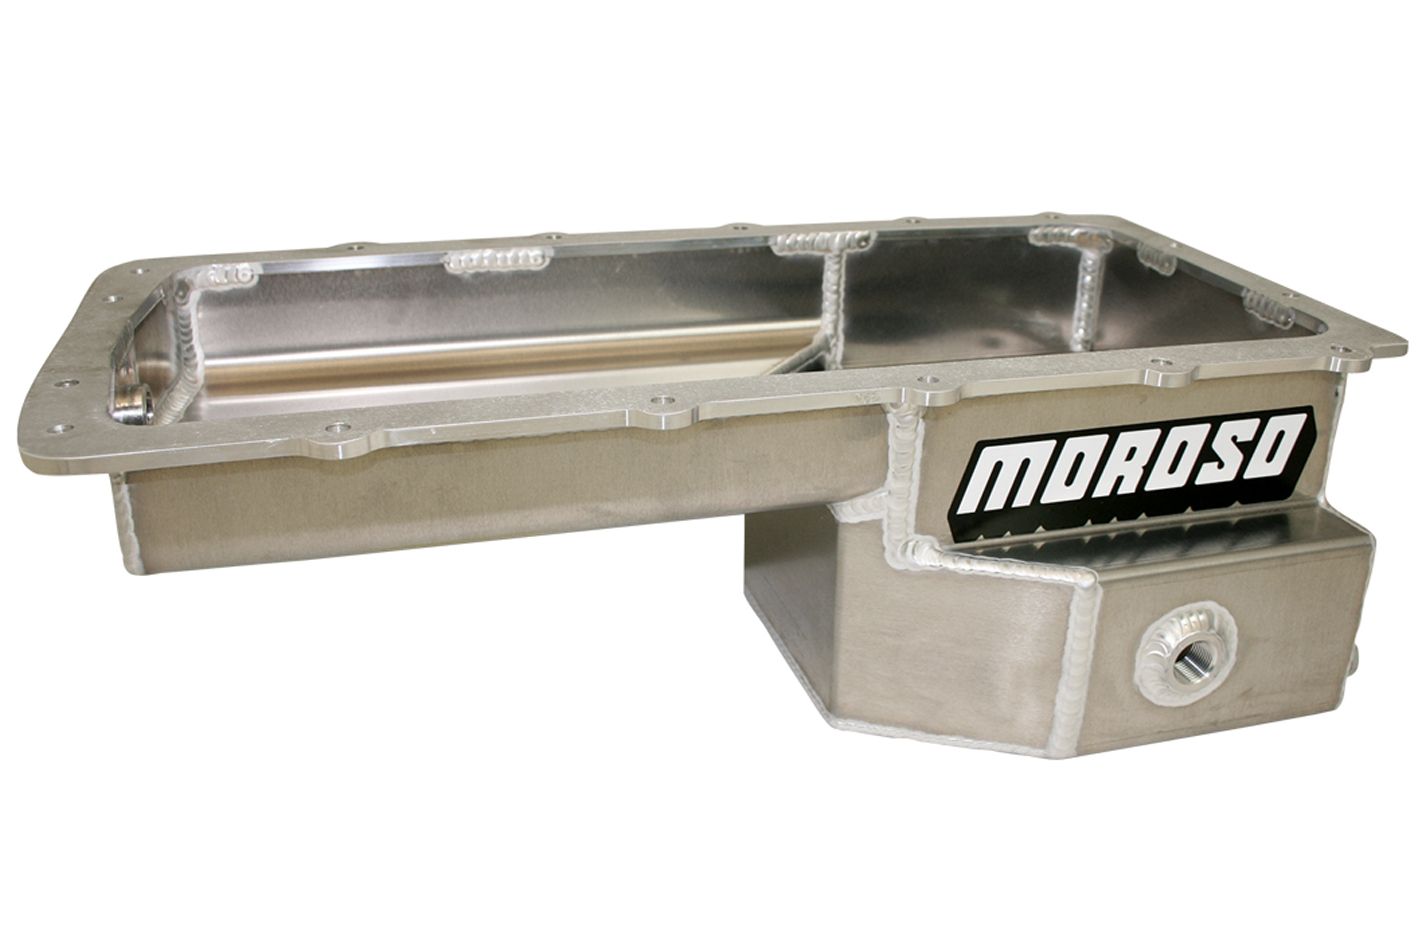 Moroso 20574 Engine Oil Pan, Drag Race, Rear Sump, 9 qt, 3-7/8 in Deep, Aluminum, Natural, Ford Coyote, Ford Mustang 1994-2018, Each